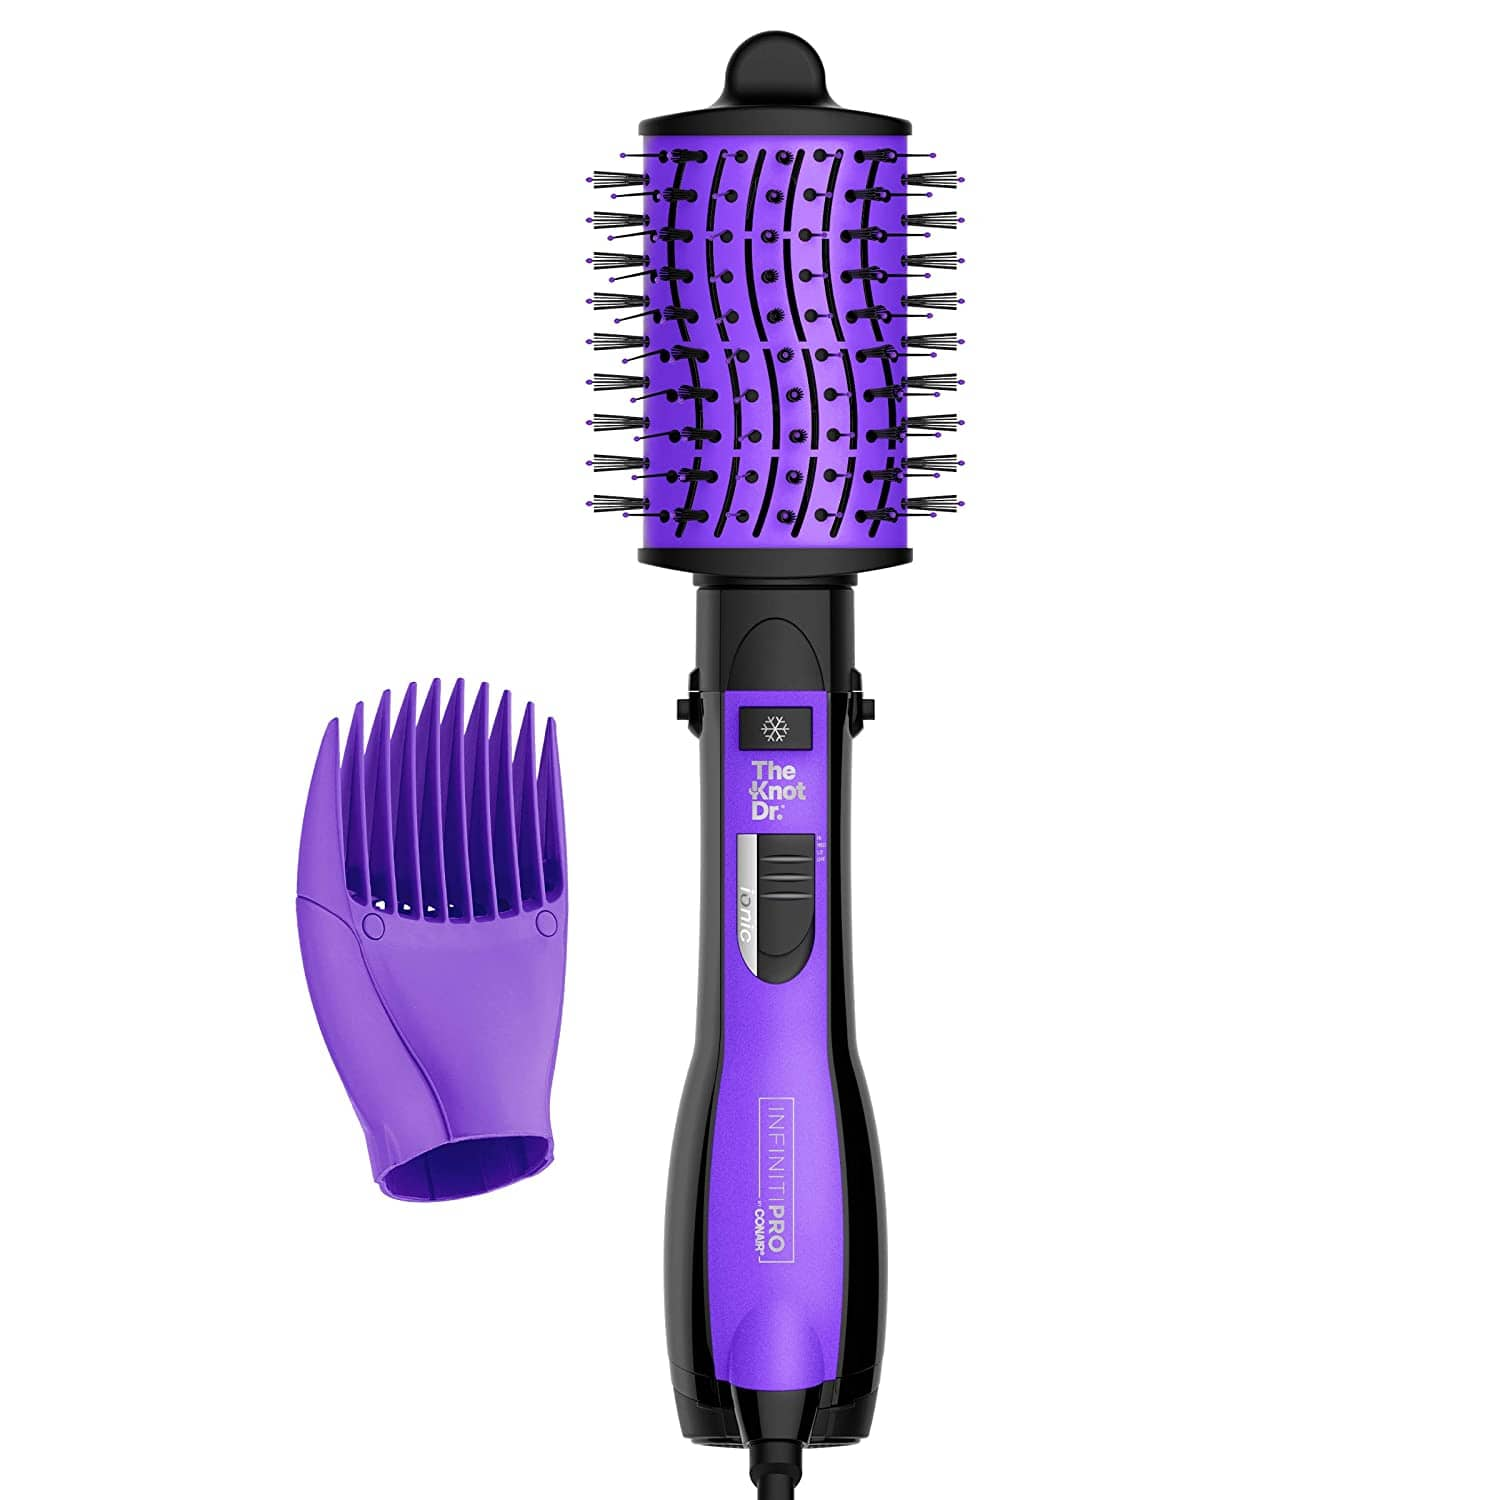 InfinitiPro by Conair The Knot Dr. All-in-One Hair Dryer & Volumizer Brush $25.50 + Free Shipping